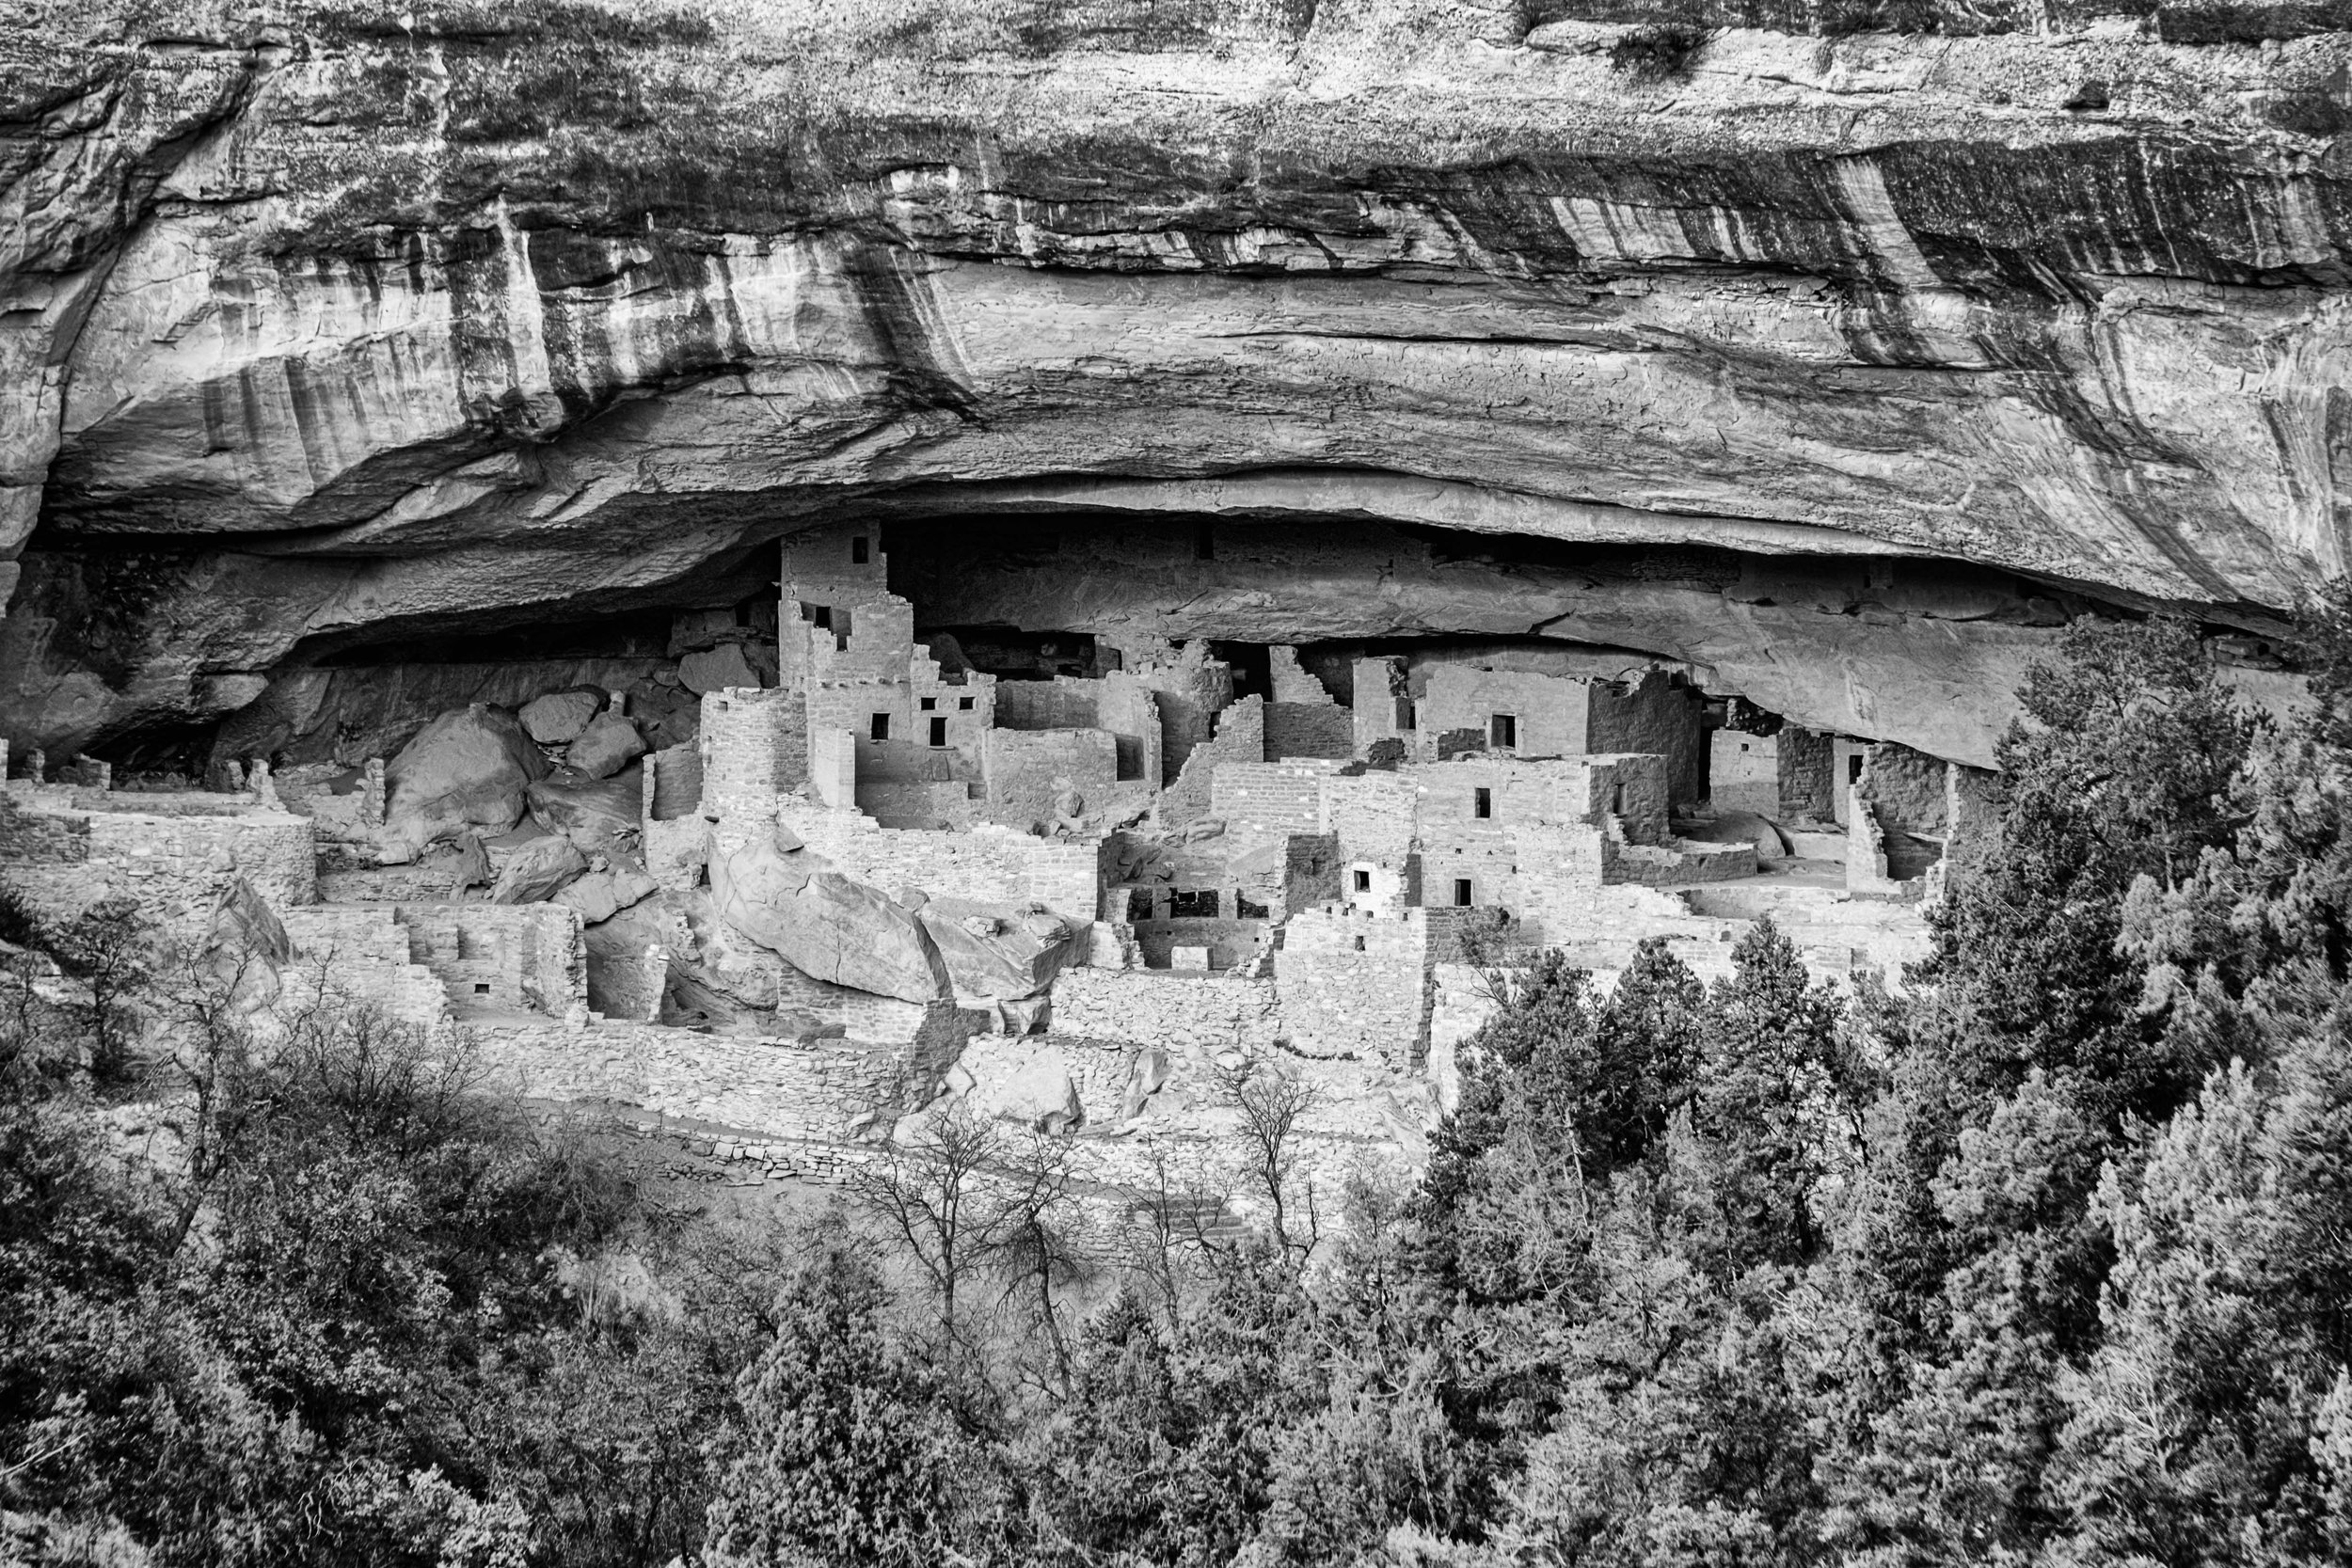 Cliff Palace contains nearly 200 rooms and 23 kivas and had a population of approximately 100 people